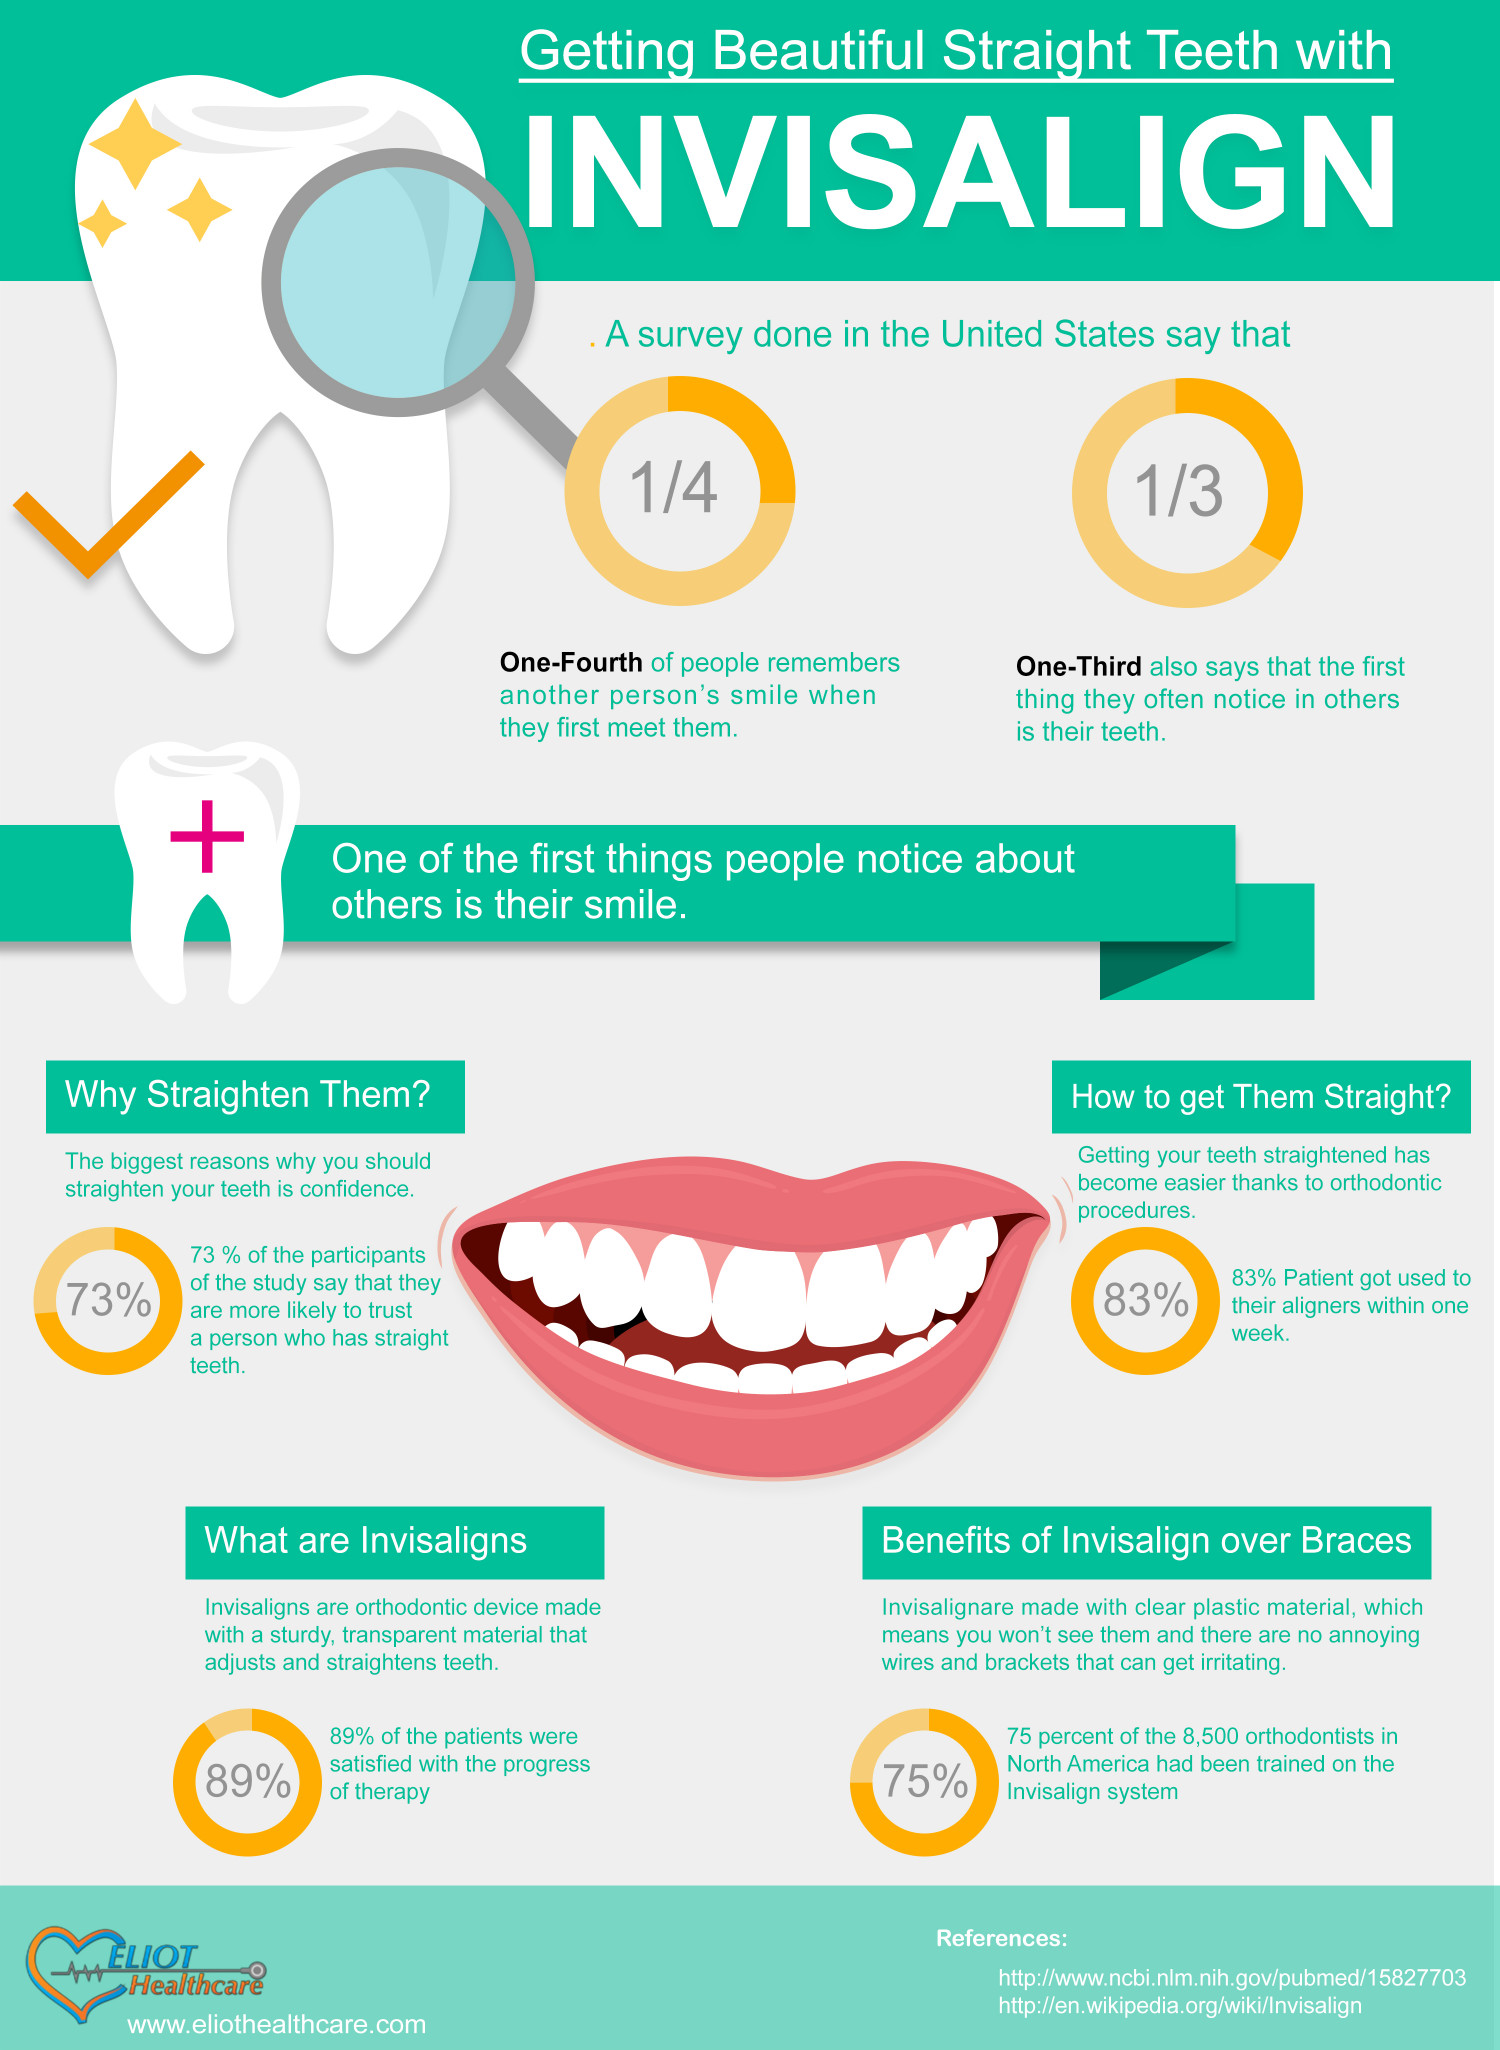 Getting Beautiful Straight Teeth with Invisalign Infographic